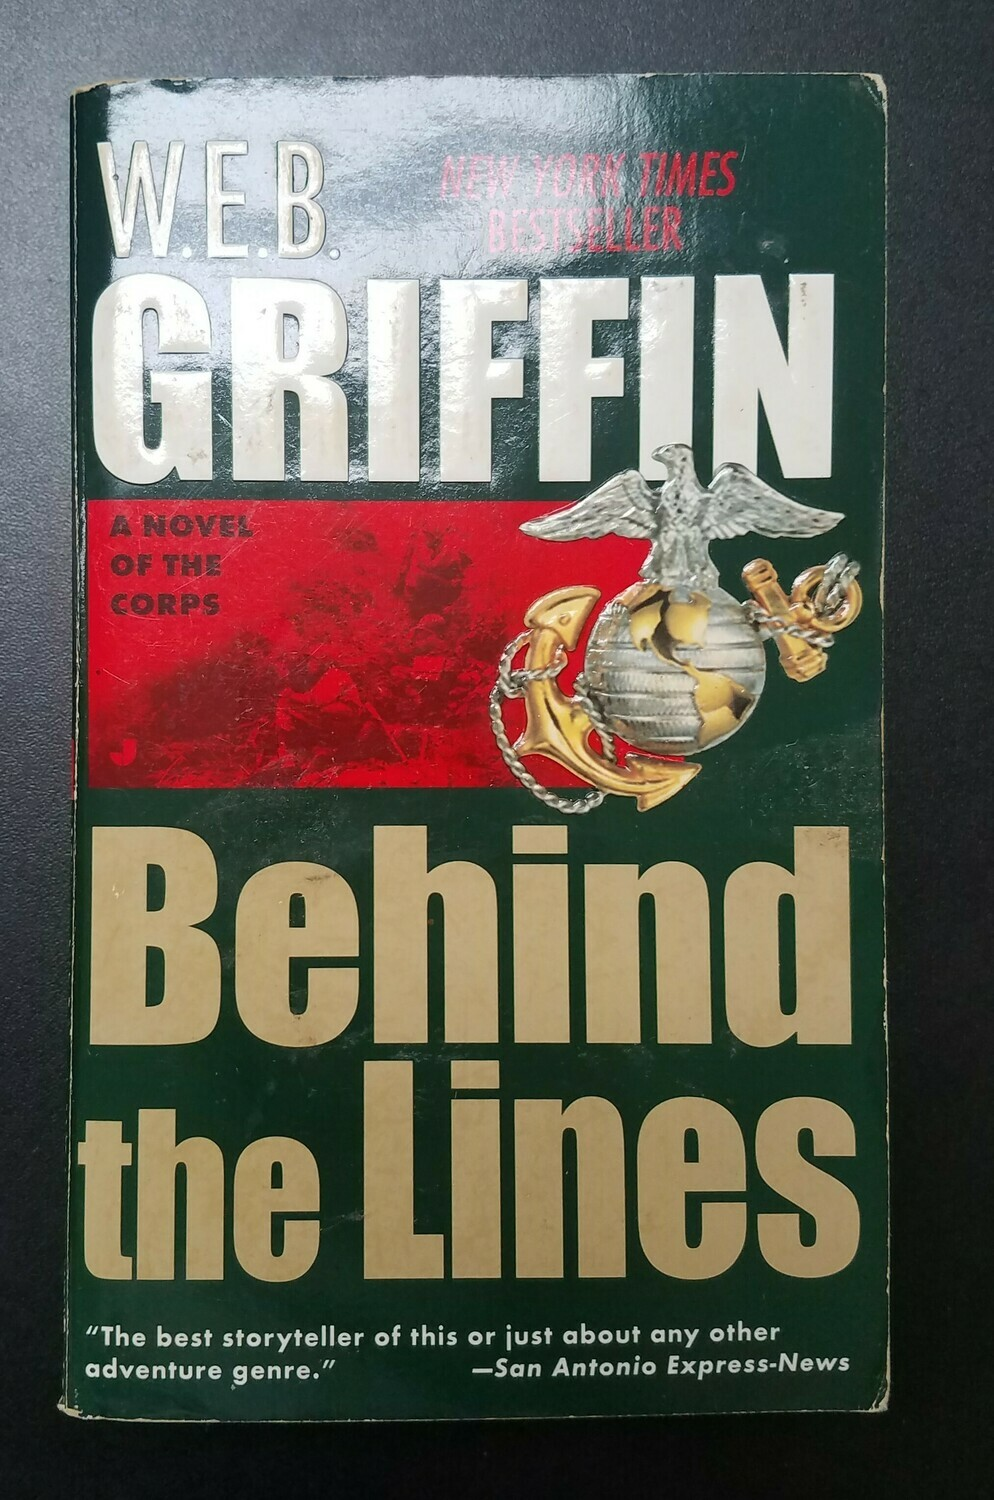 Behind the Lines by W.E.B. Griffin